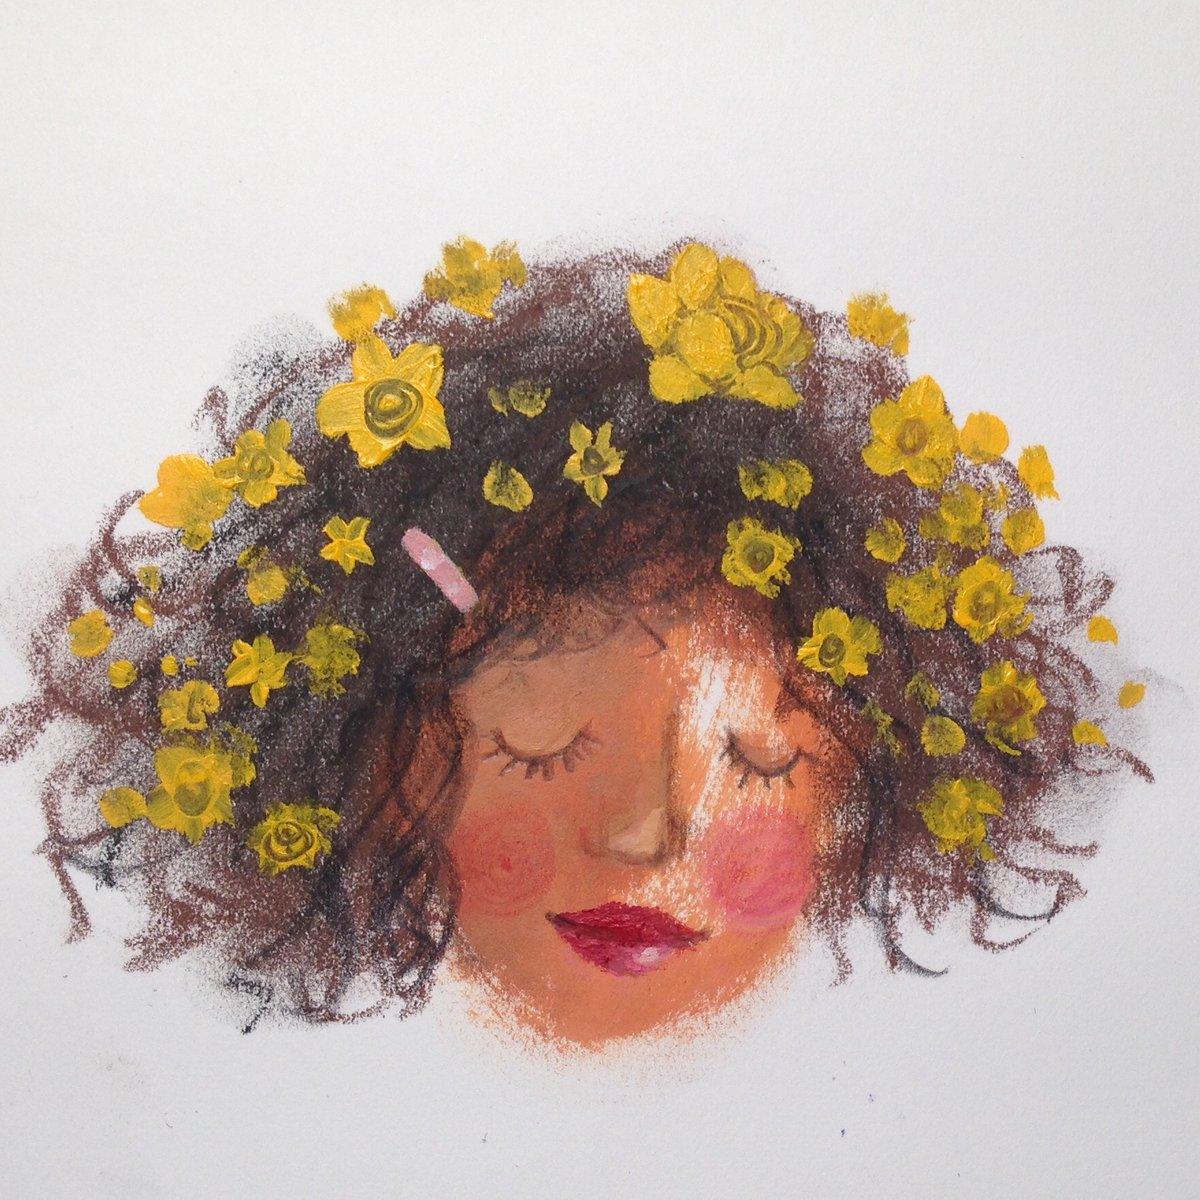 Wear some #FiligreeGold flowers in your hair to remember the sunshine 🌞 #colour_collective @Clr_Collective